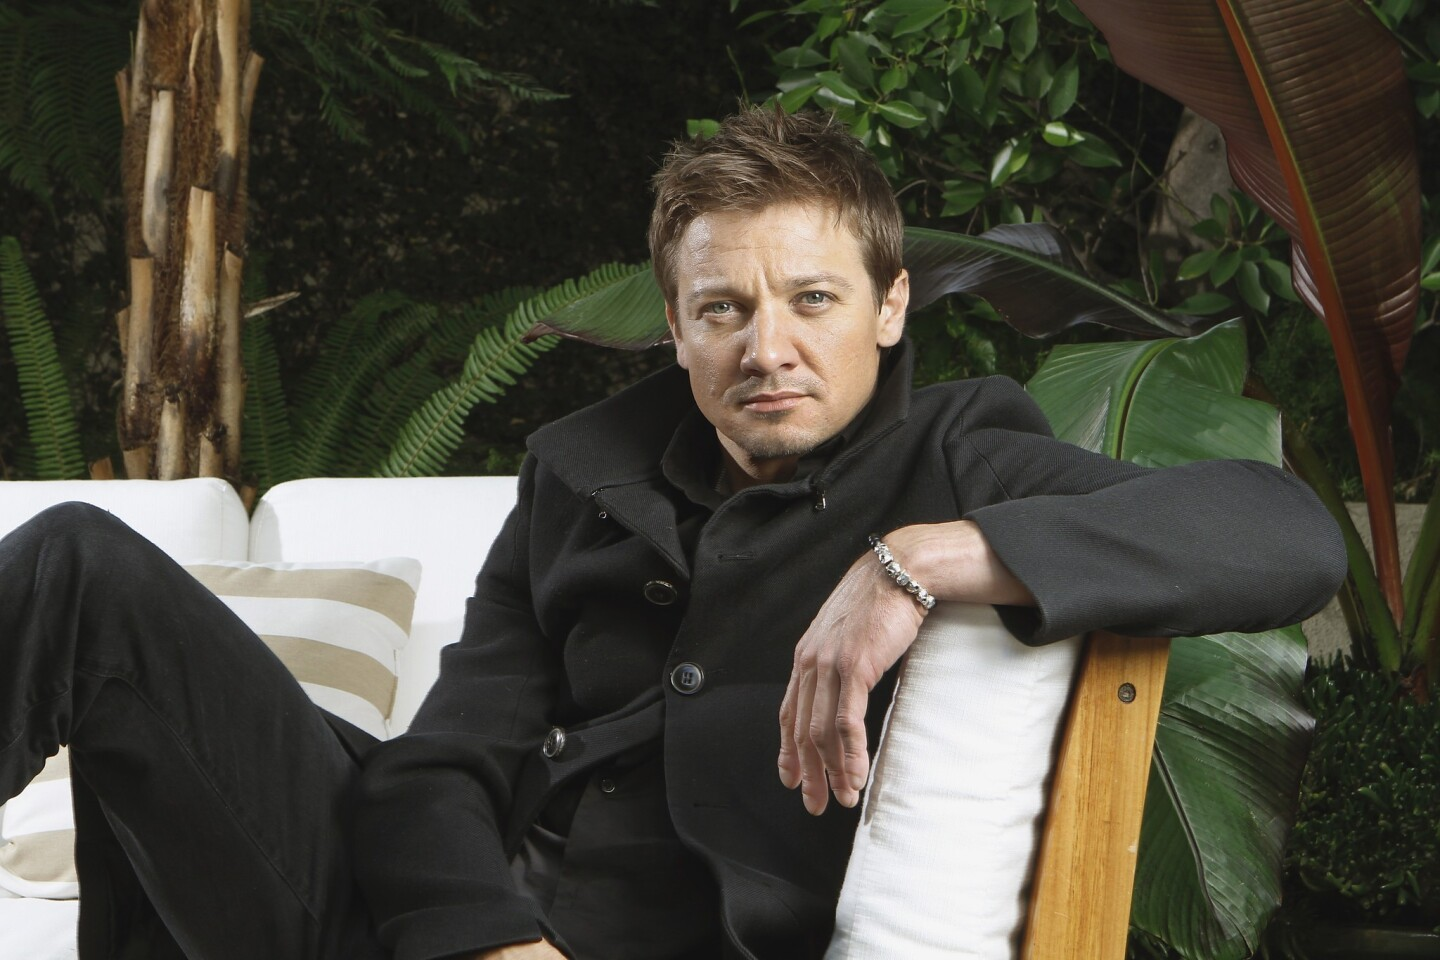 Jeremy Renner | Career in pictures